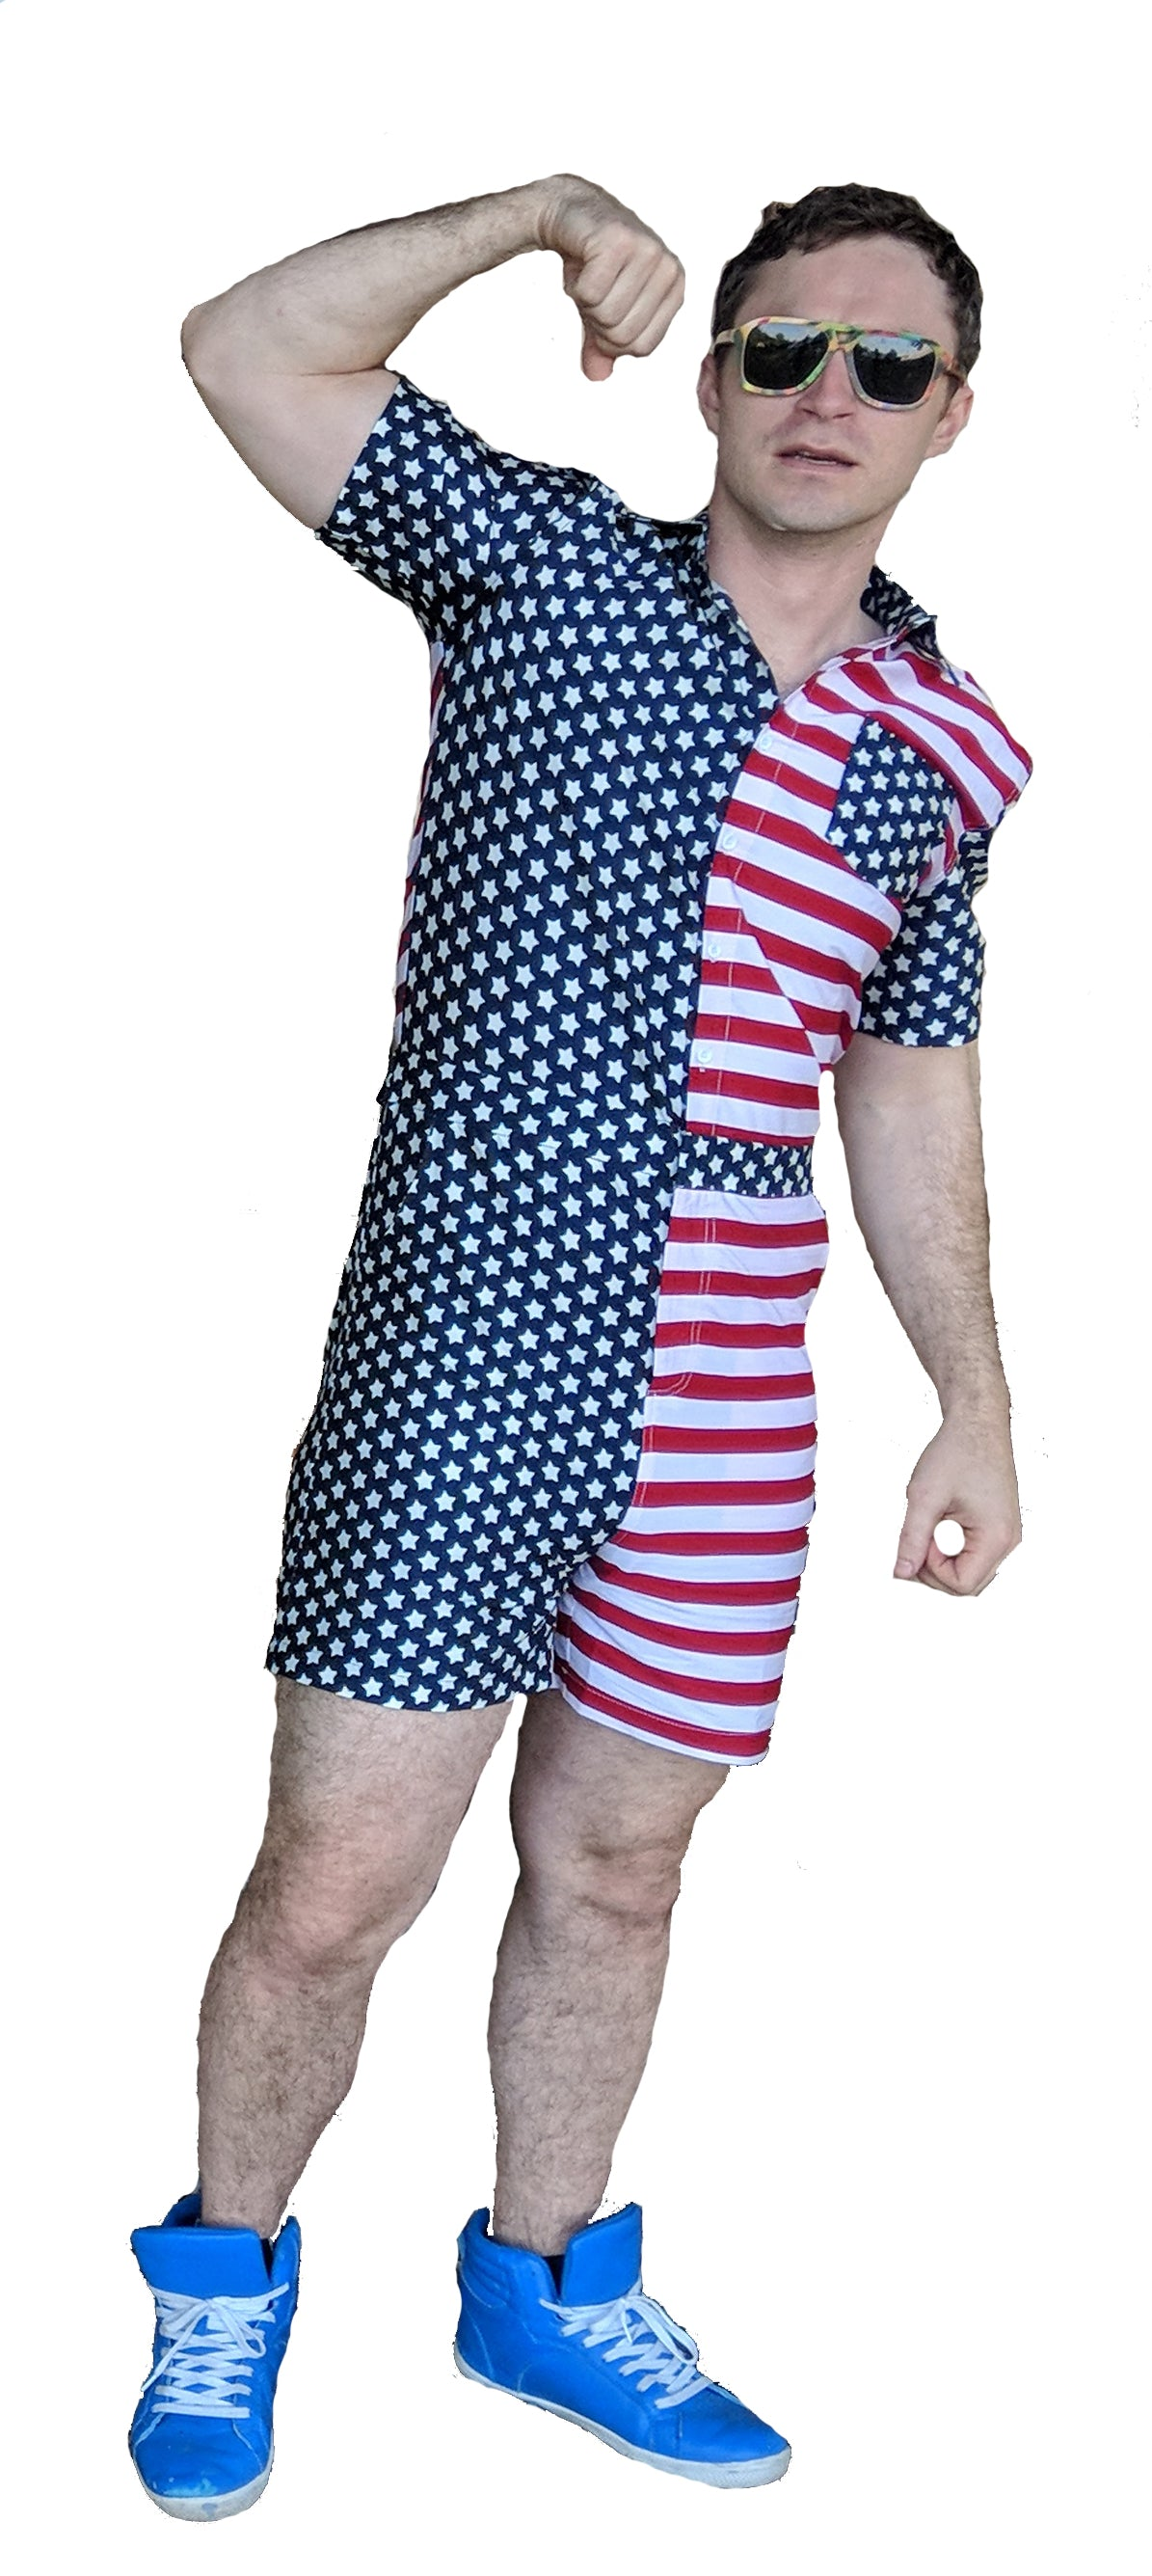 fa8e3122ee9 AMERICAN FLAG MEN S ROMPER BY CHARLIE ROMPER - charlieromper